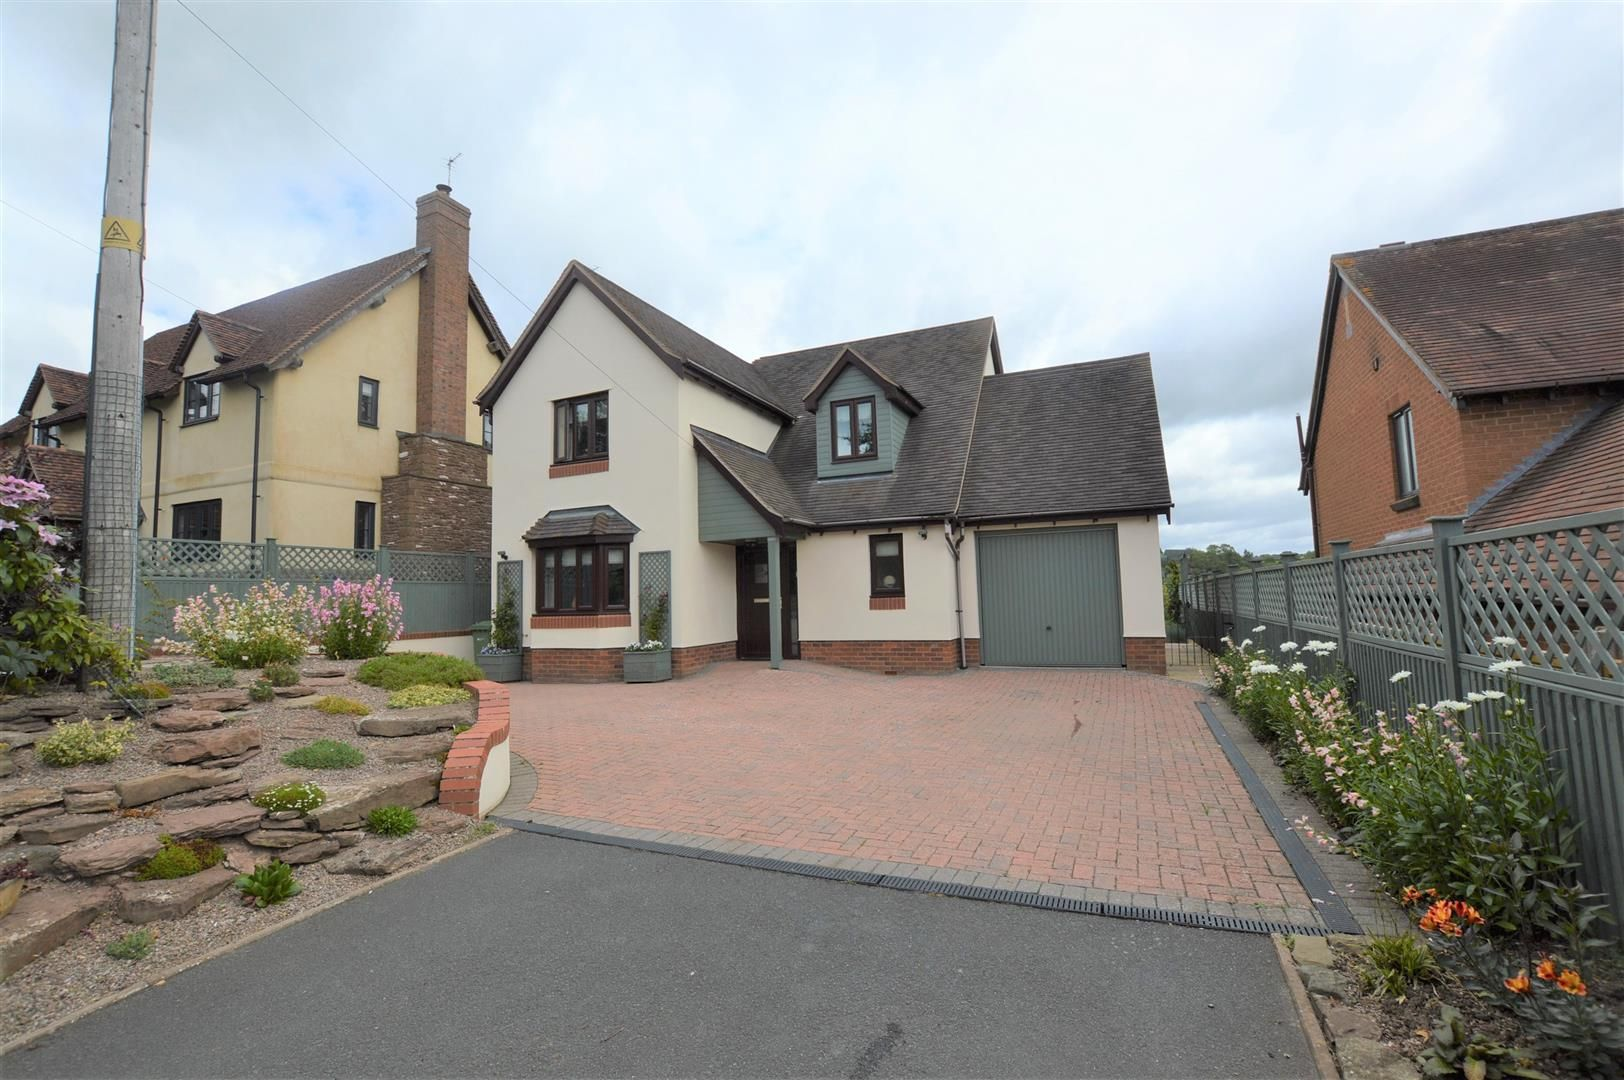 3 bed detached for sale in Kimbolton, HR6